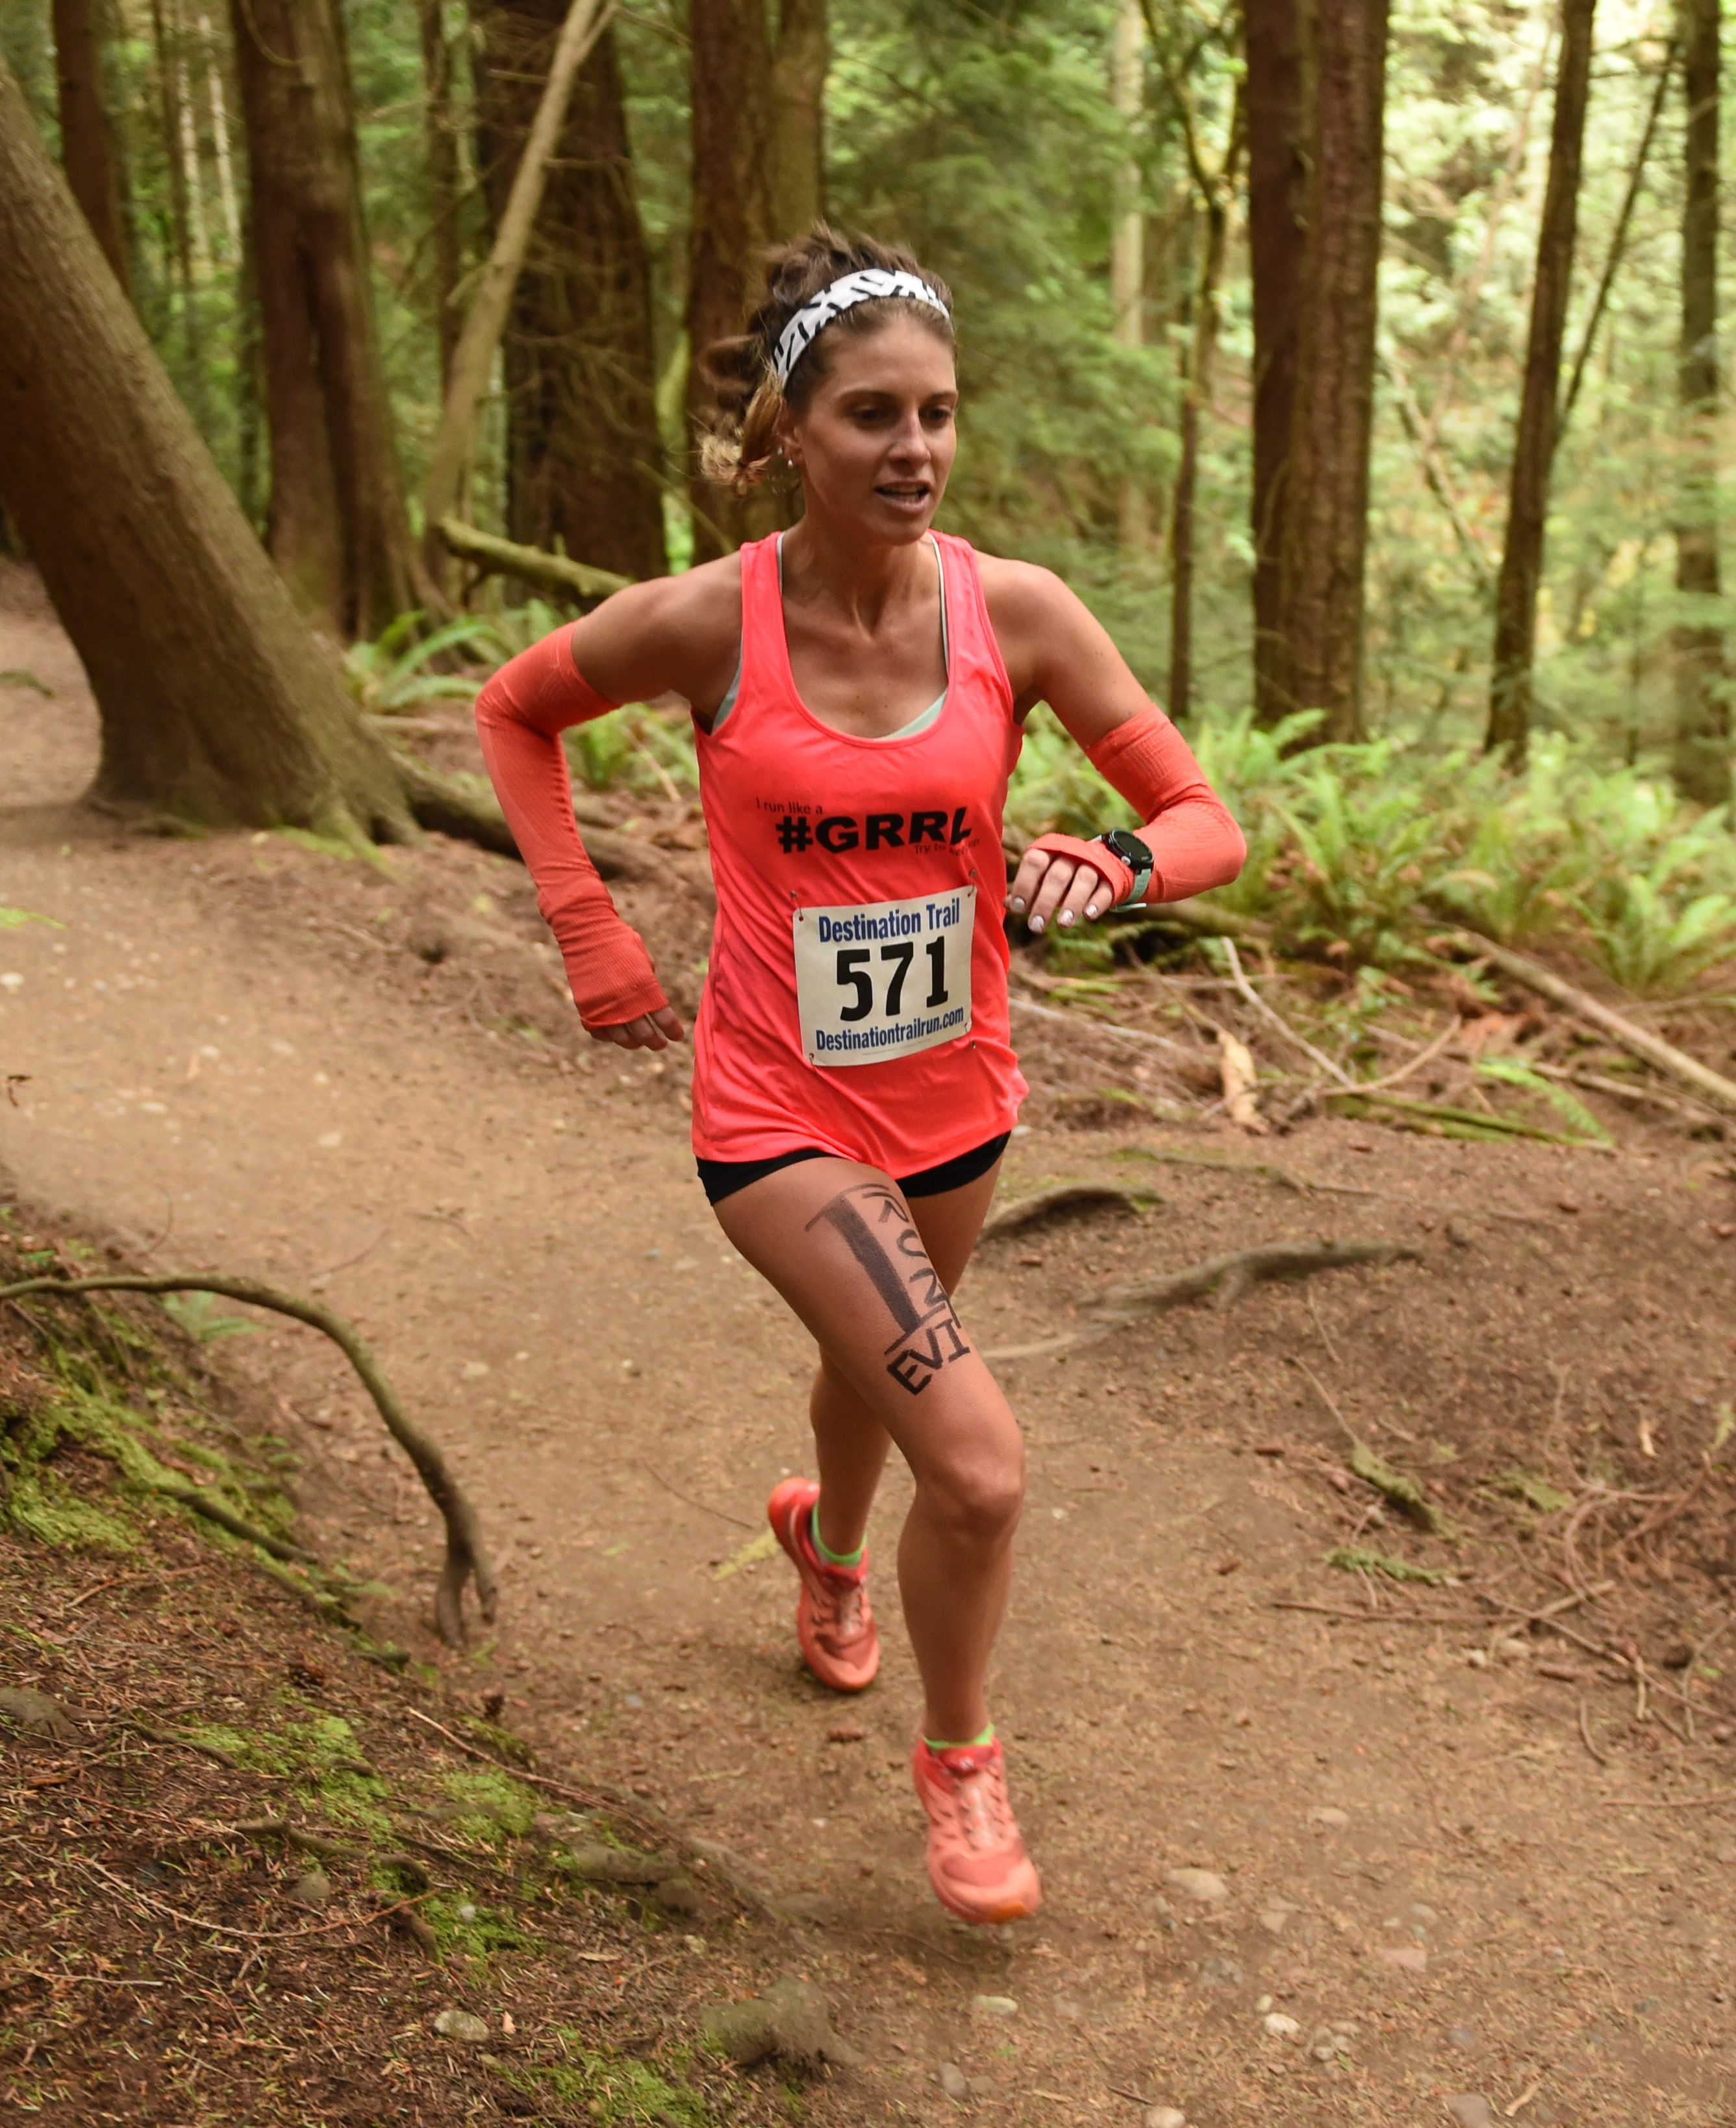 Alicia Jenkins running in a forest